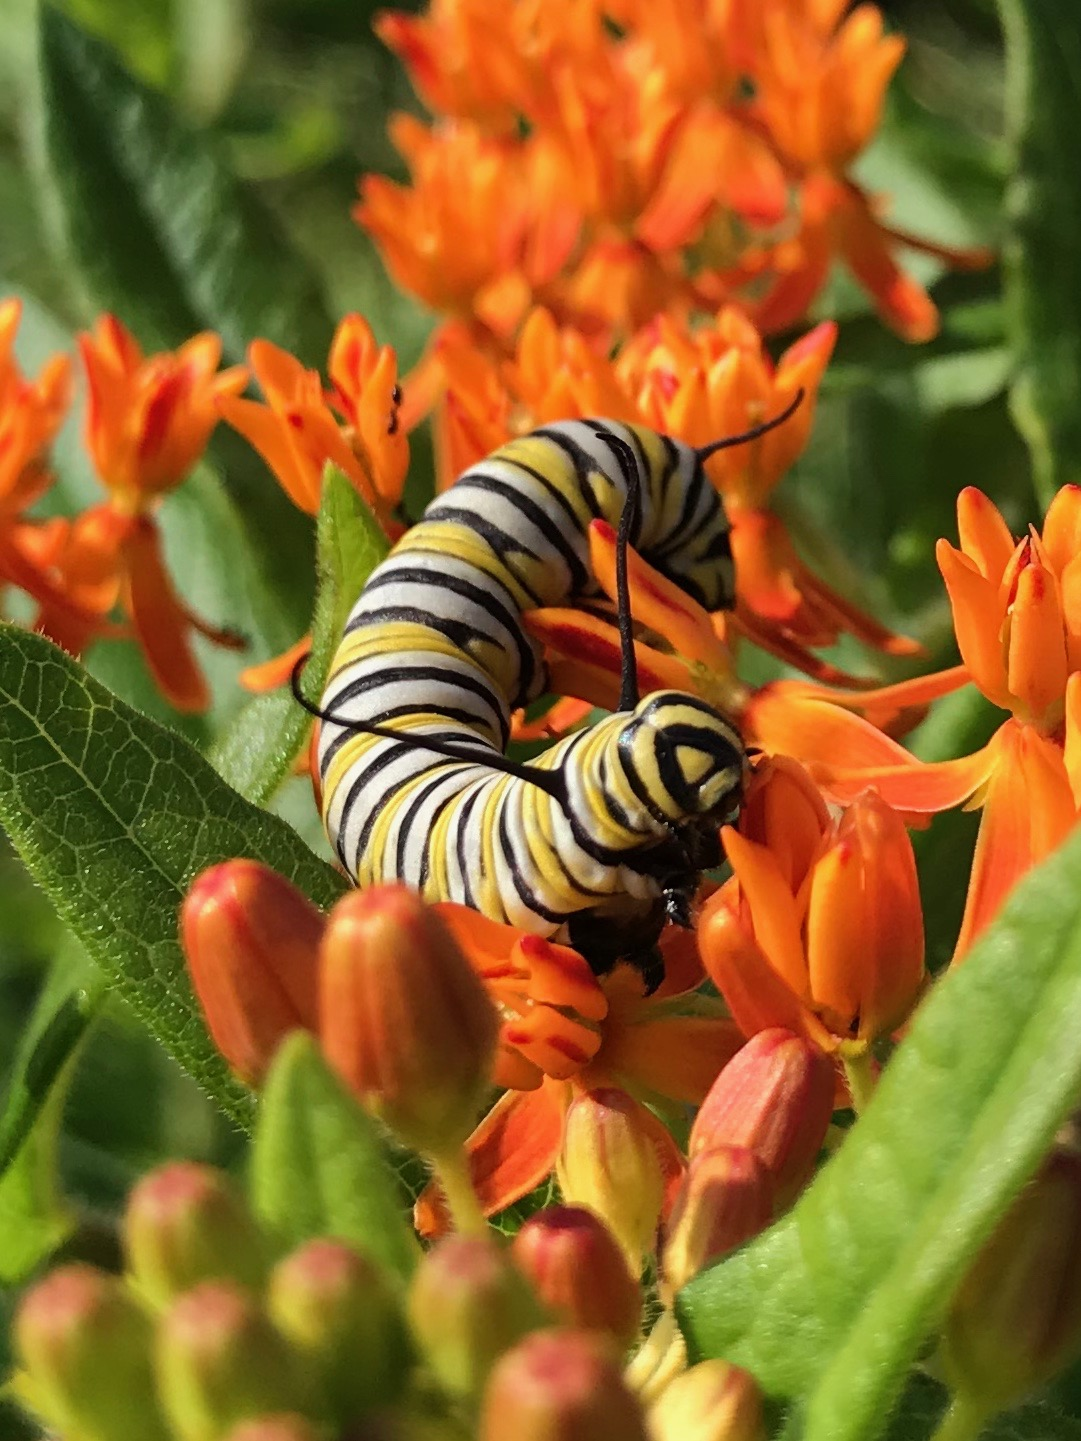 A monarch catepillar sits atop the orange flowers of butterfly milkweed.